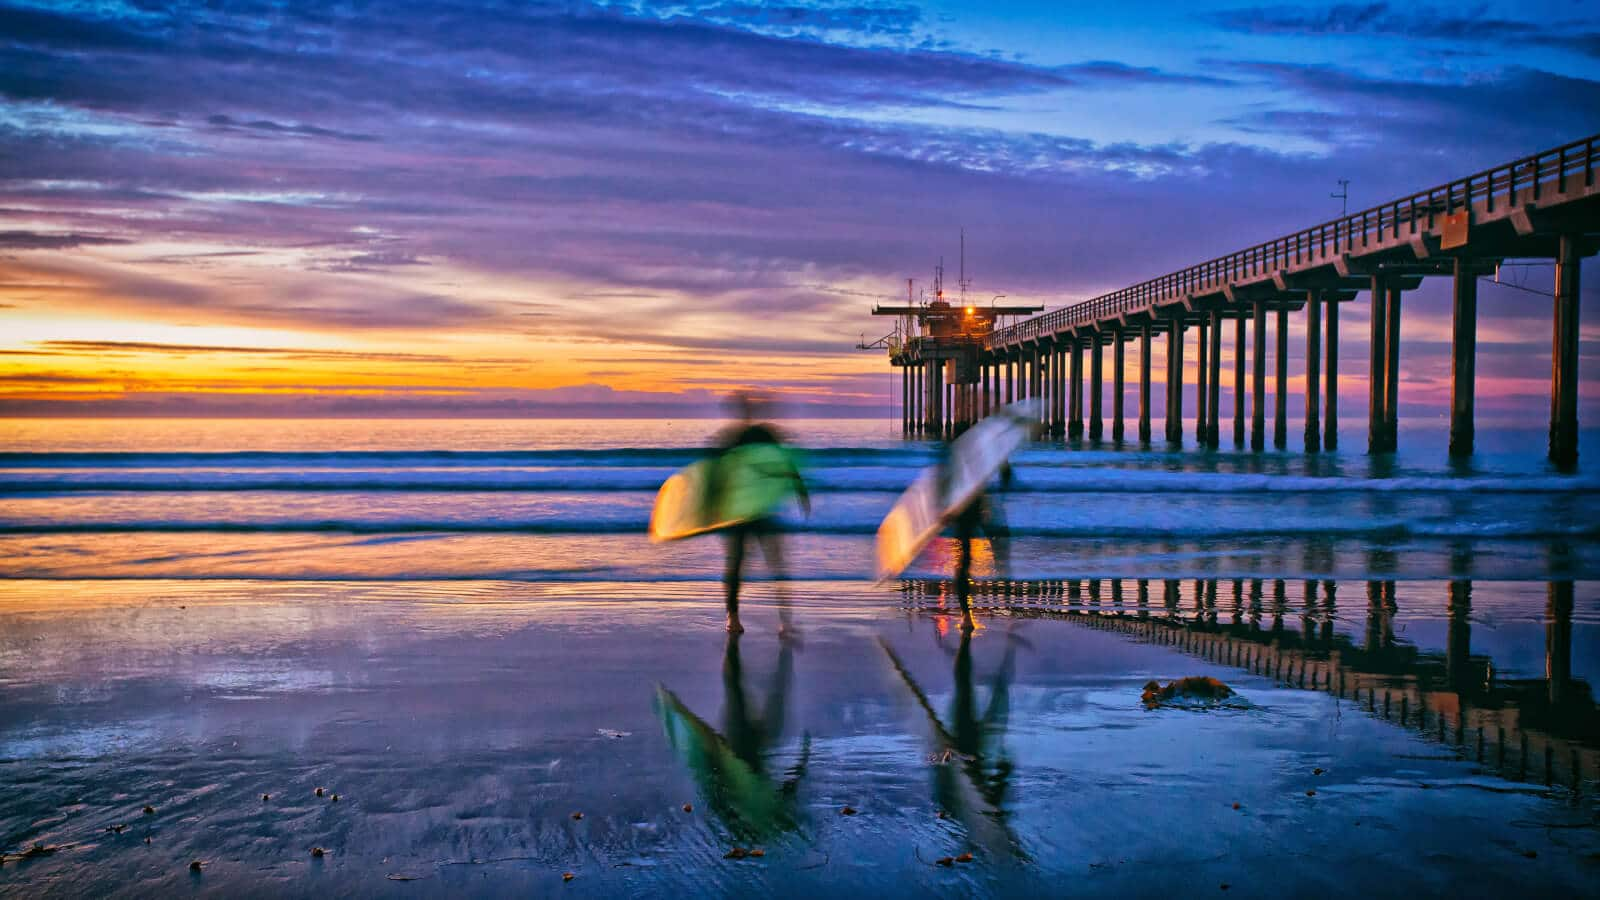 Surfers At Sunset At La Jolla Beach, San Diego, California